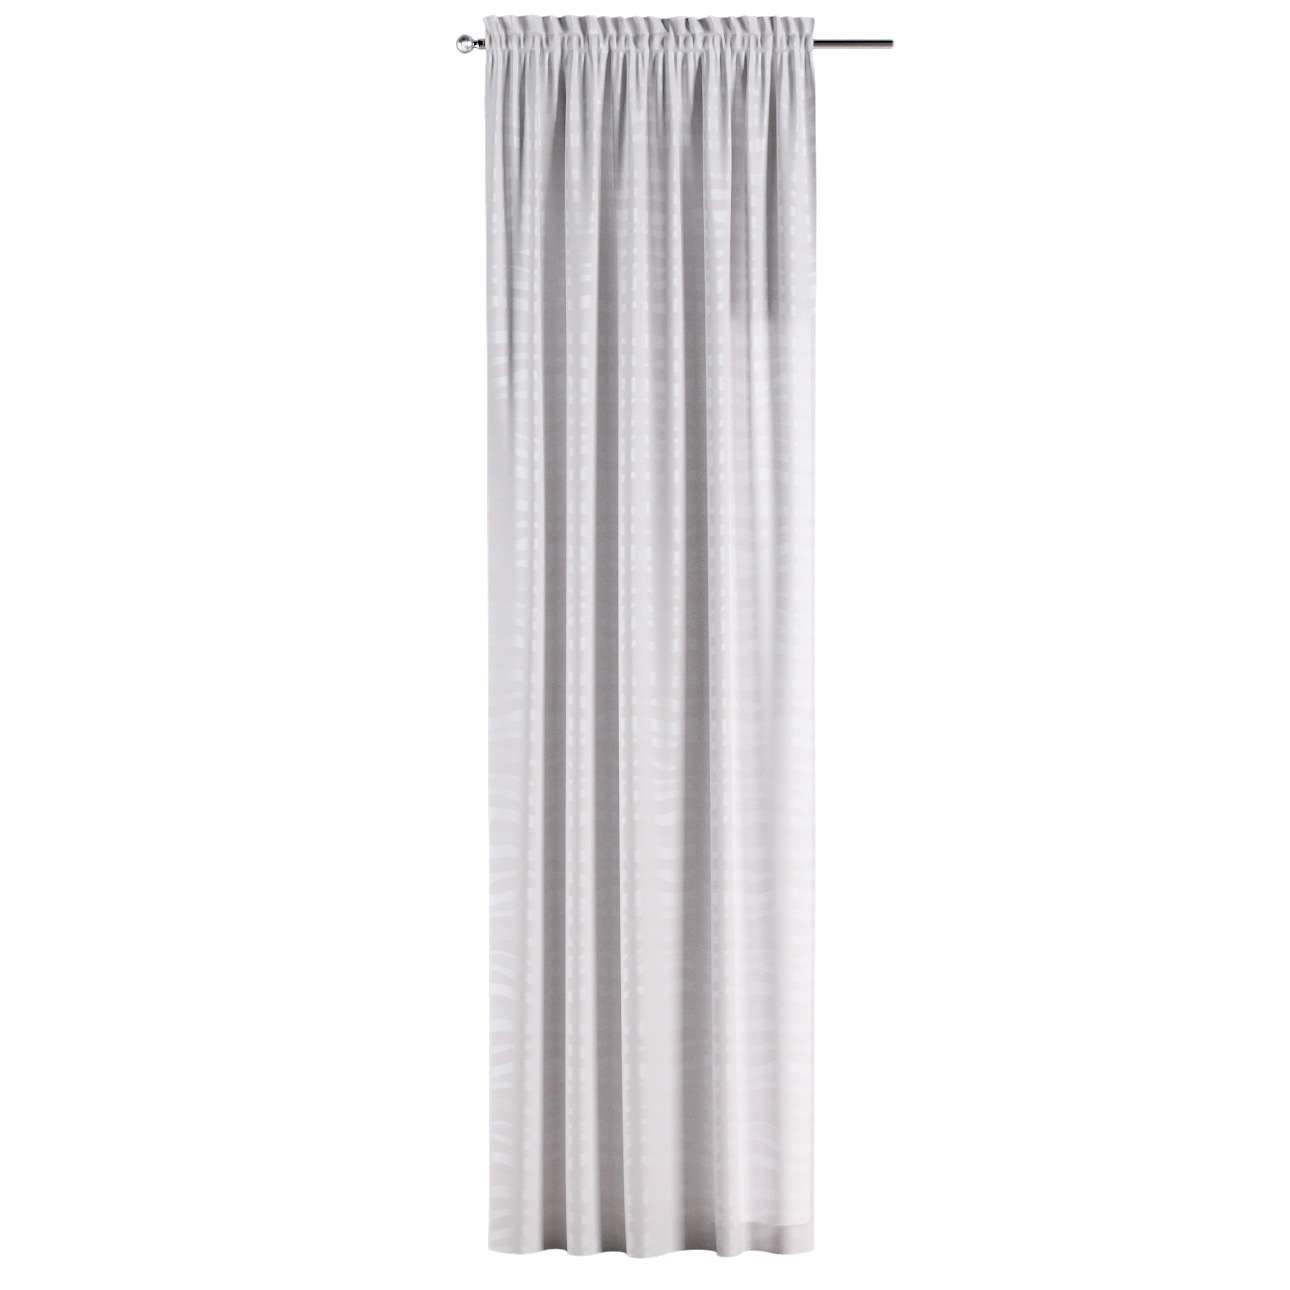 Slot and frill curtains in collection Damasco, fabric: 141-87